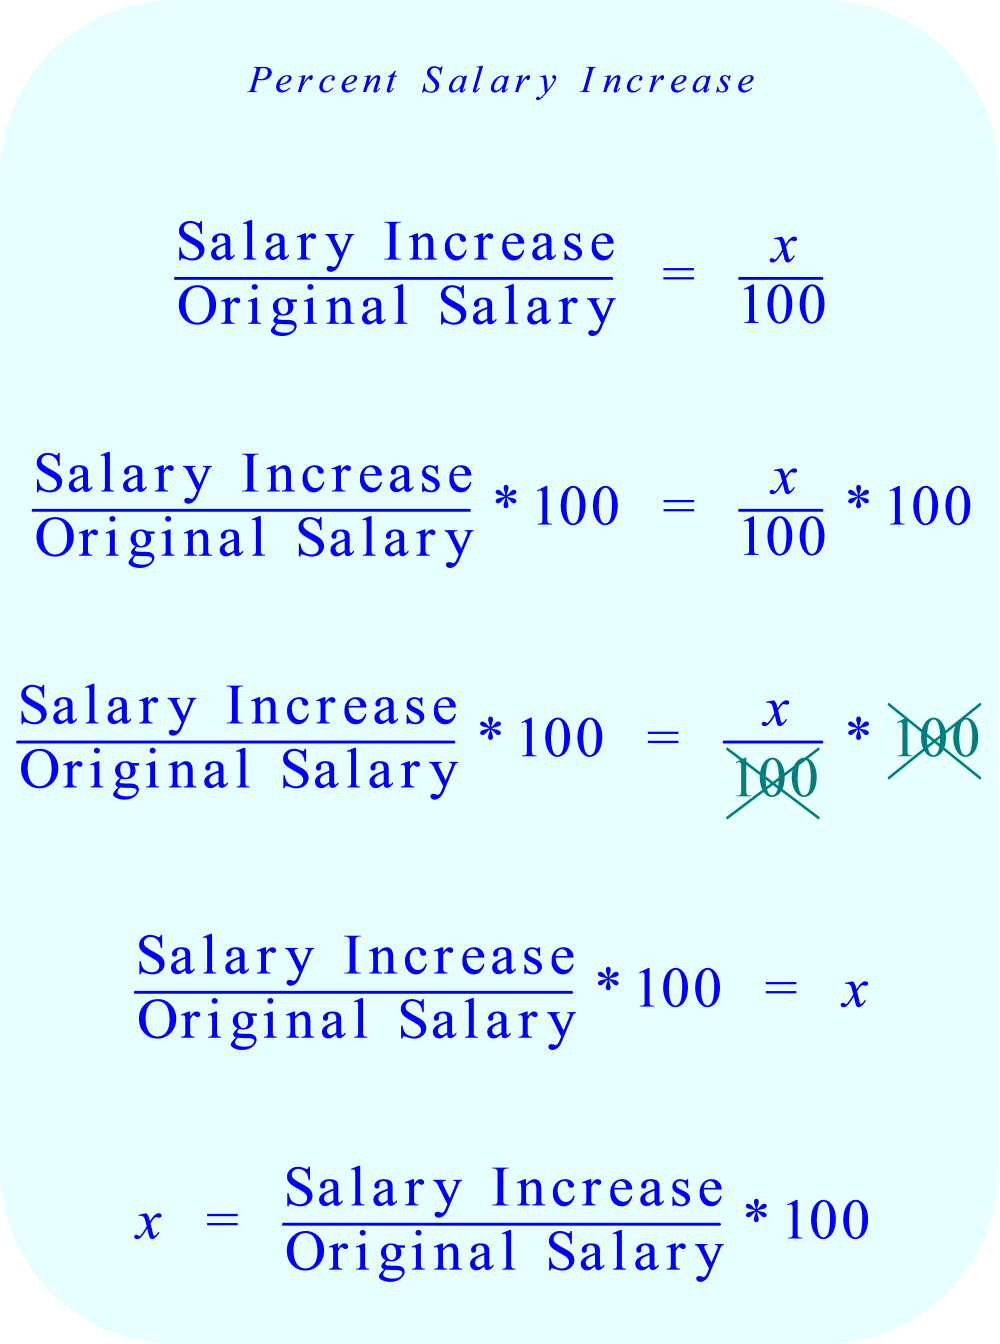 How to calculate the percent of salary increase